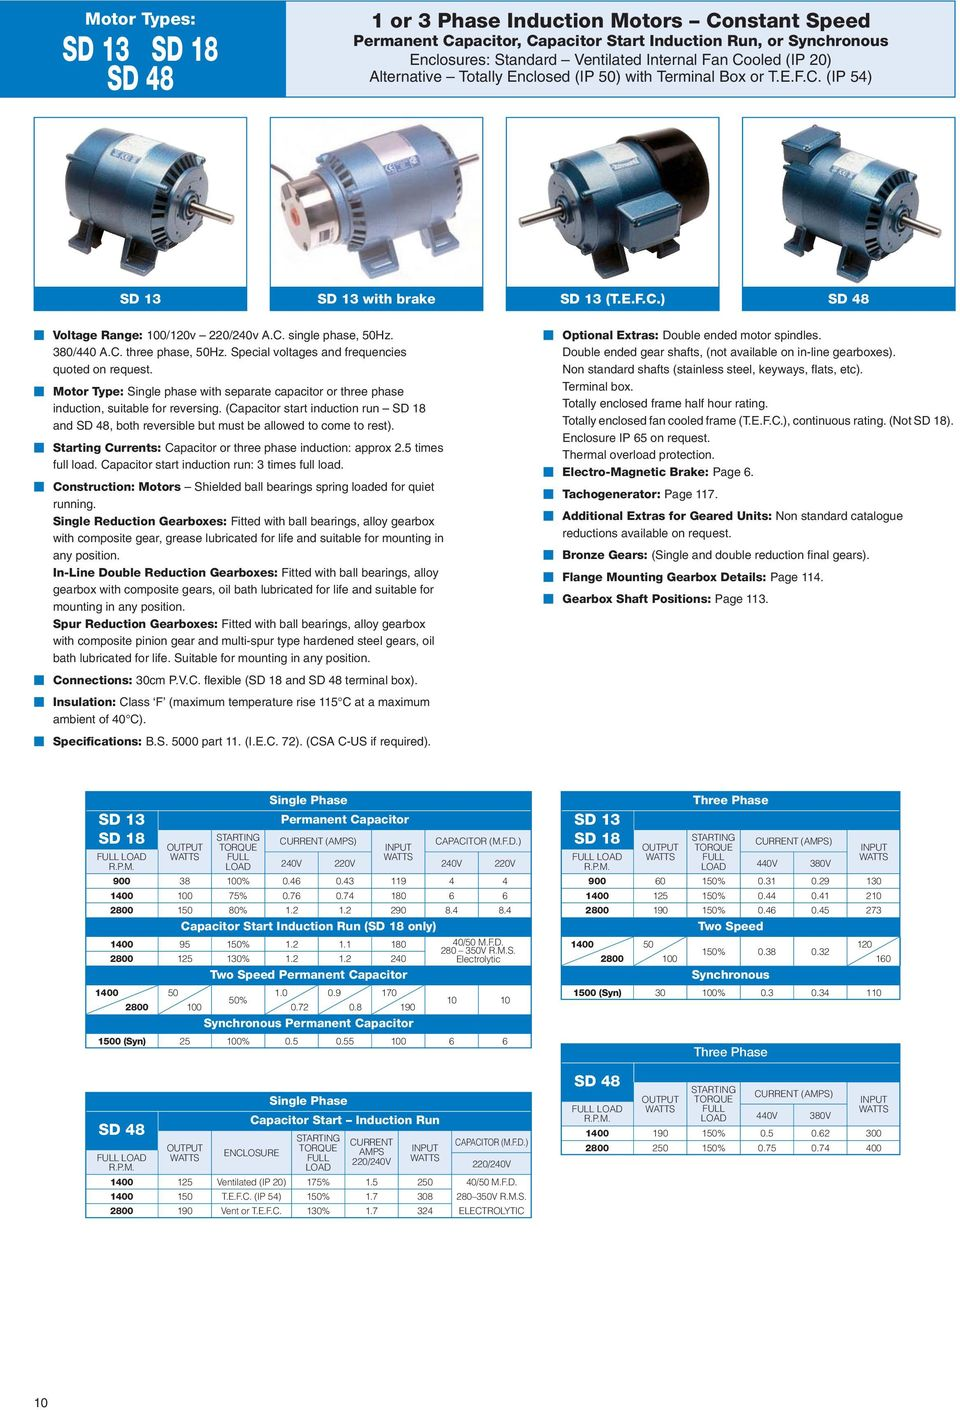 Ac Motors Catalogue Pdf Permanent Split Capacitor Run Induction Motor Special Voltages And Frequencies Quoted On Request Type Single Phase With Separate